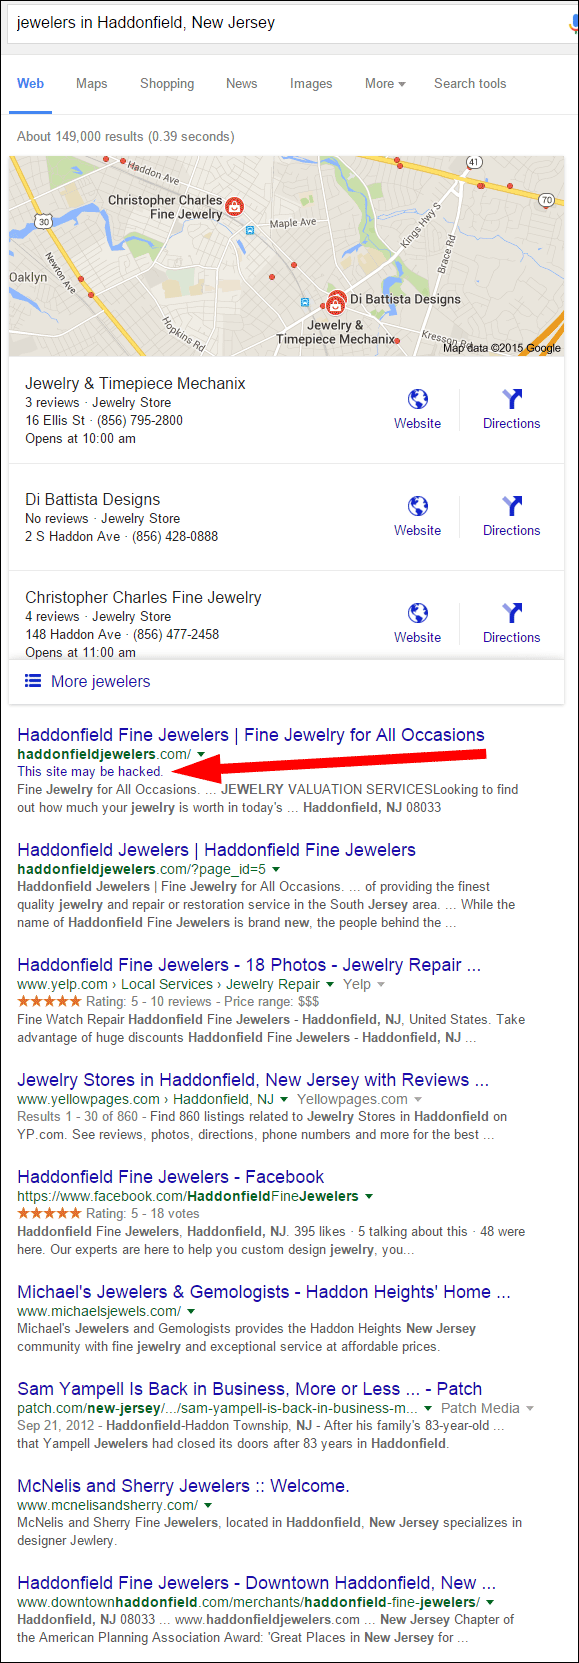 Jewelry & Timepiece Mechanix Website Review 1375-jewelers-in-Haddonfield-NJ-serp-32